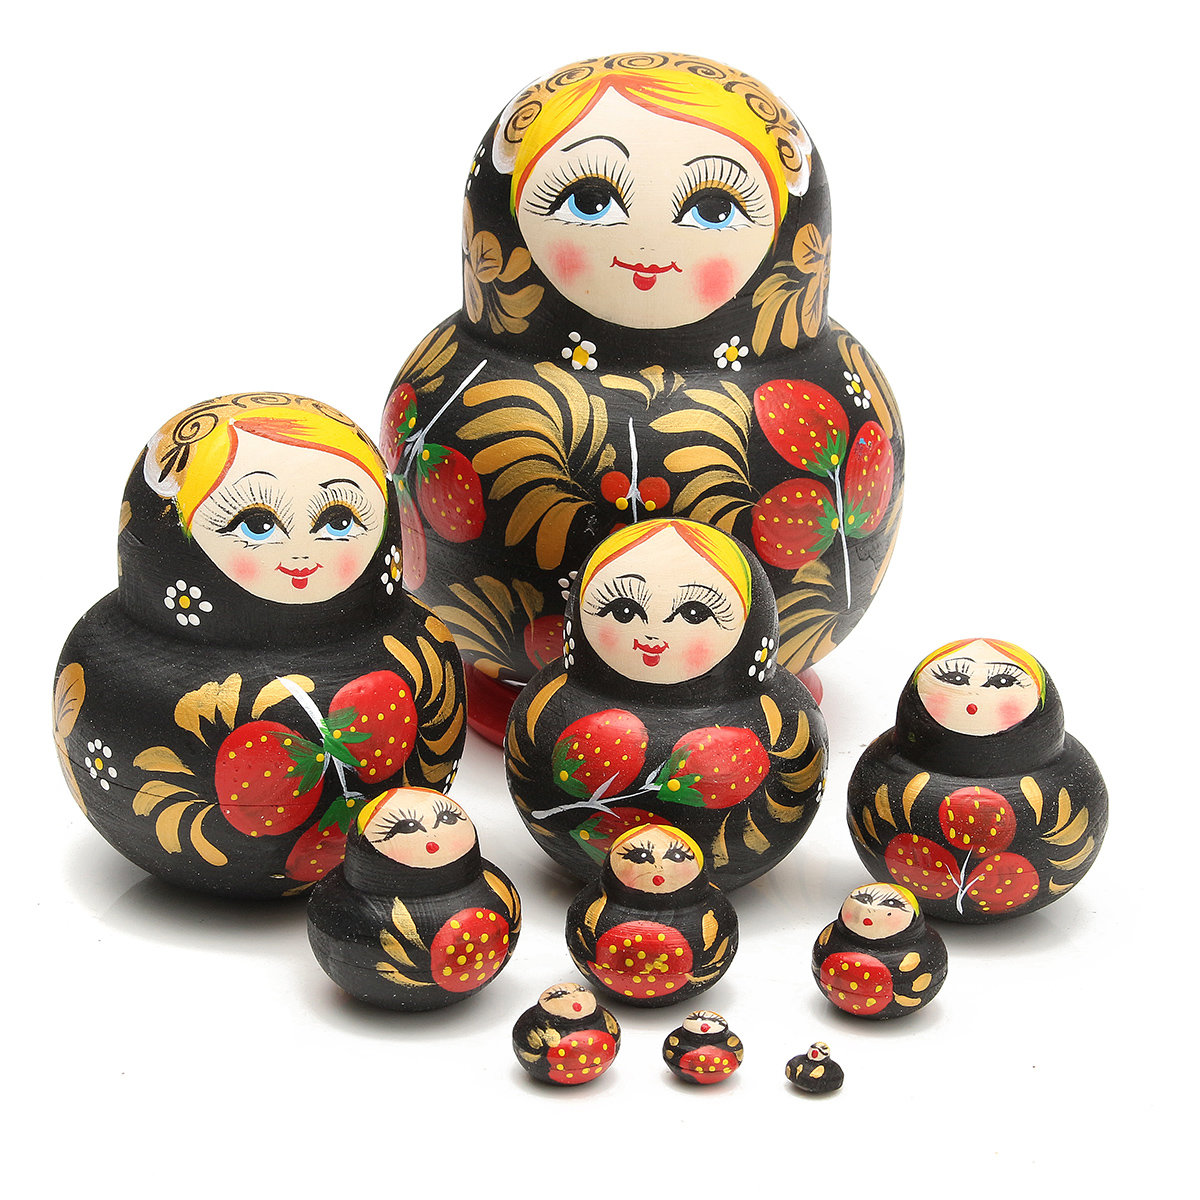 10Pcs Beautiful Russian Strawberry Dolls Children's Intellectual Toys Wooden Handmade Toys Kid Gift